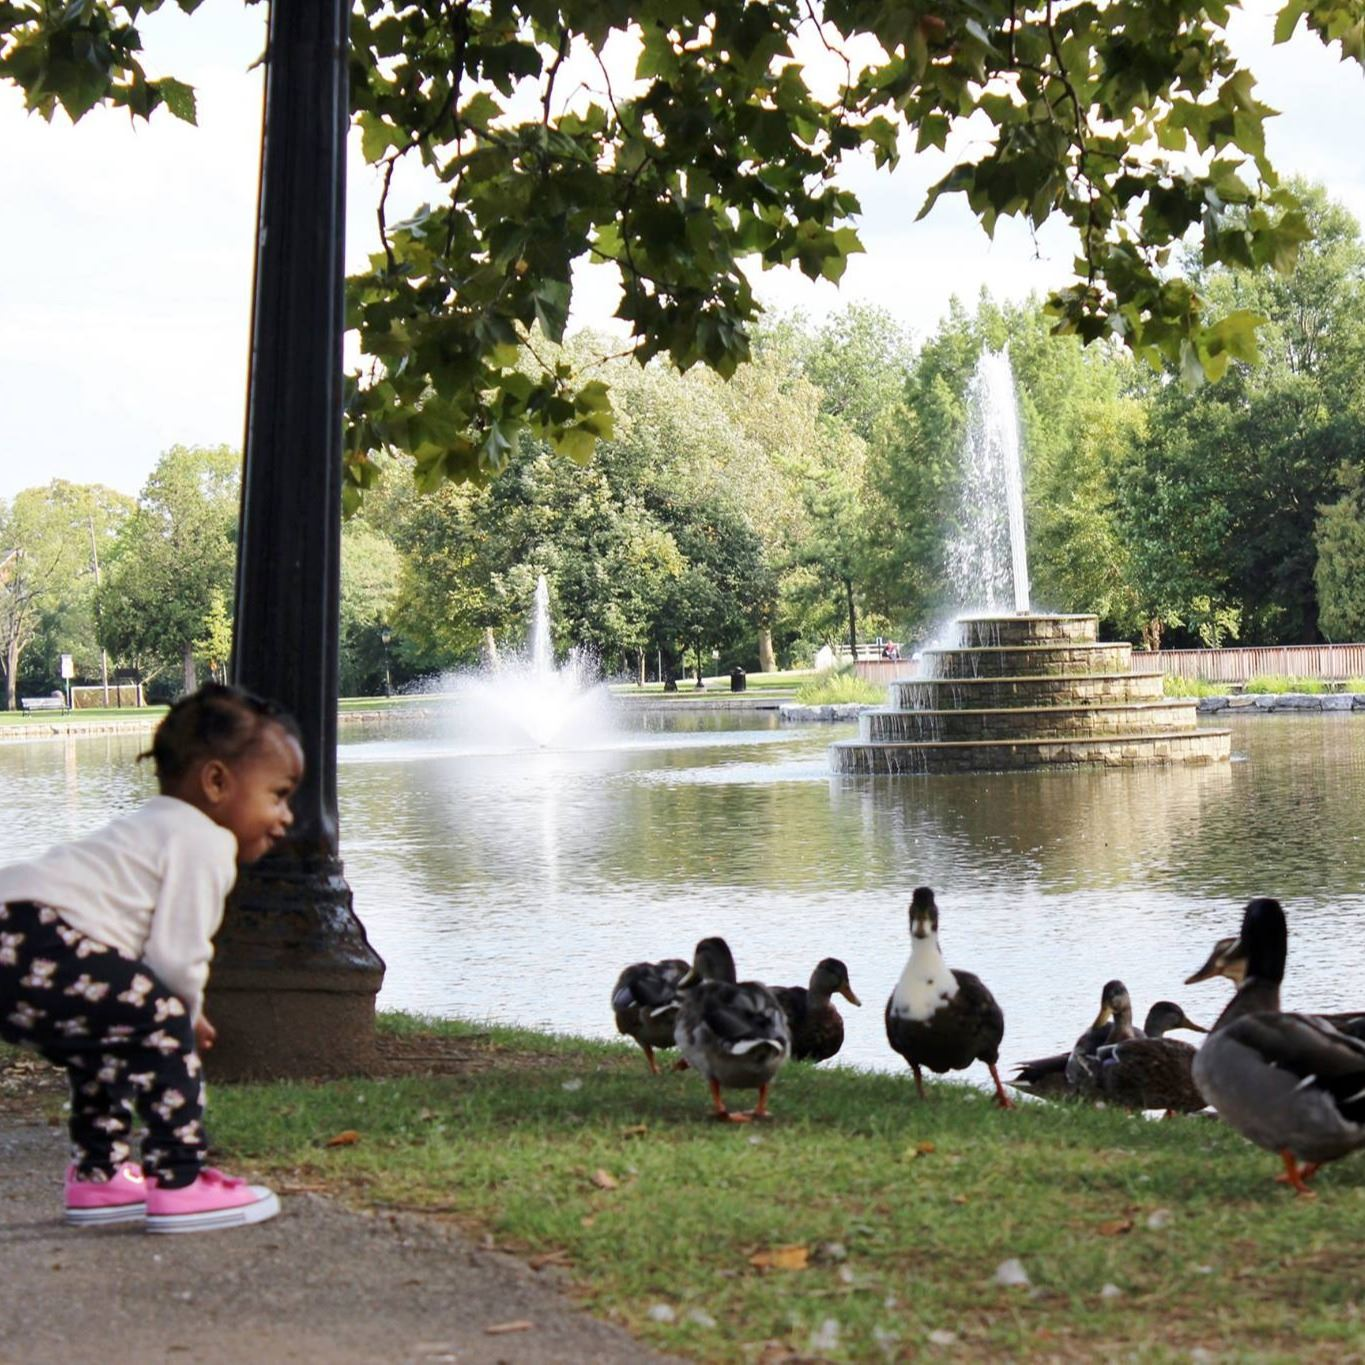 Young girl smiling at ducks at the side of a public pond